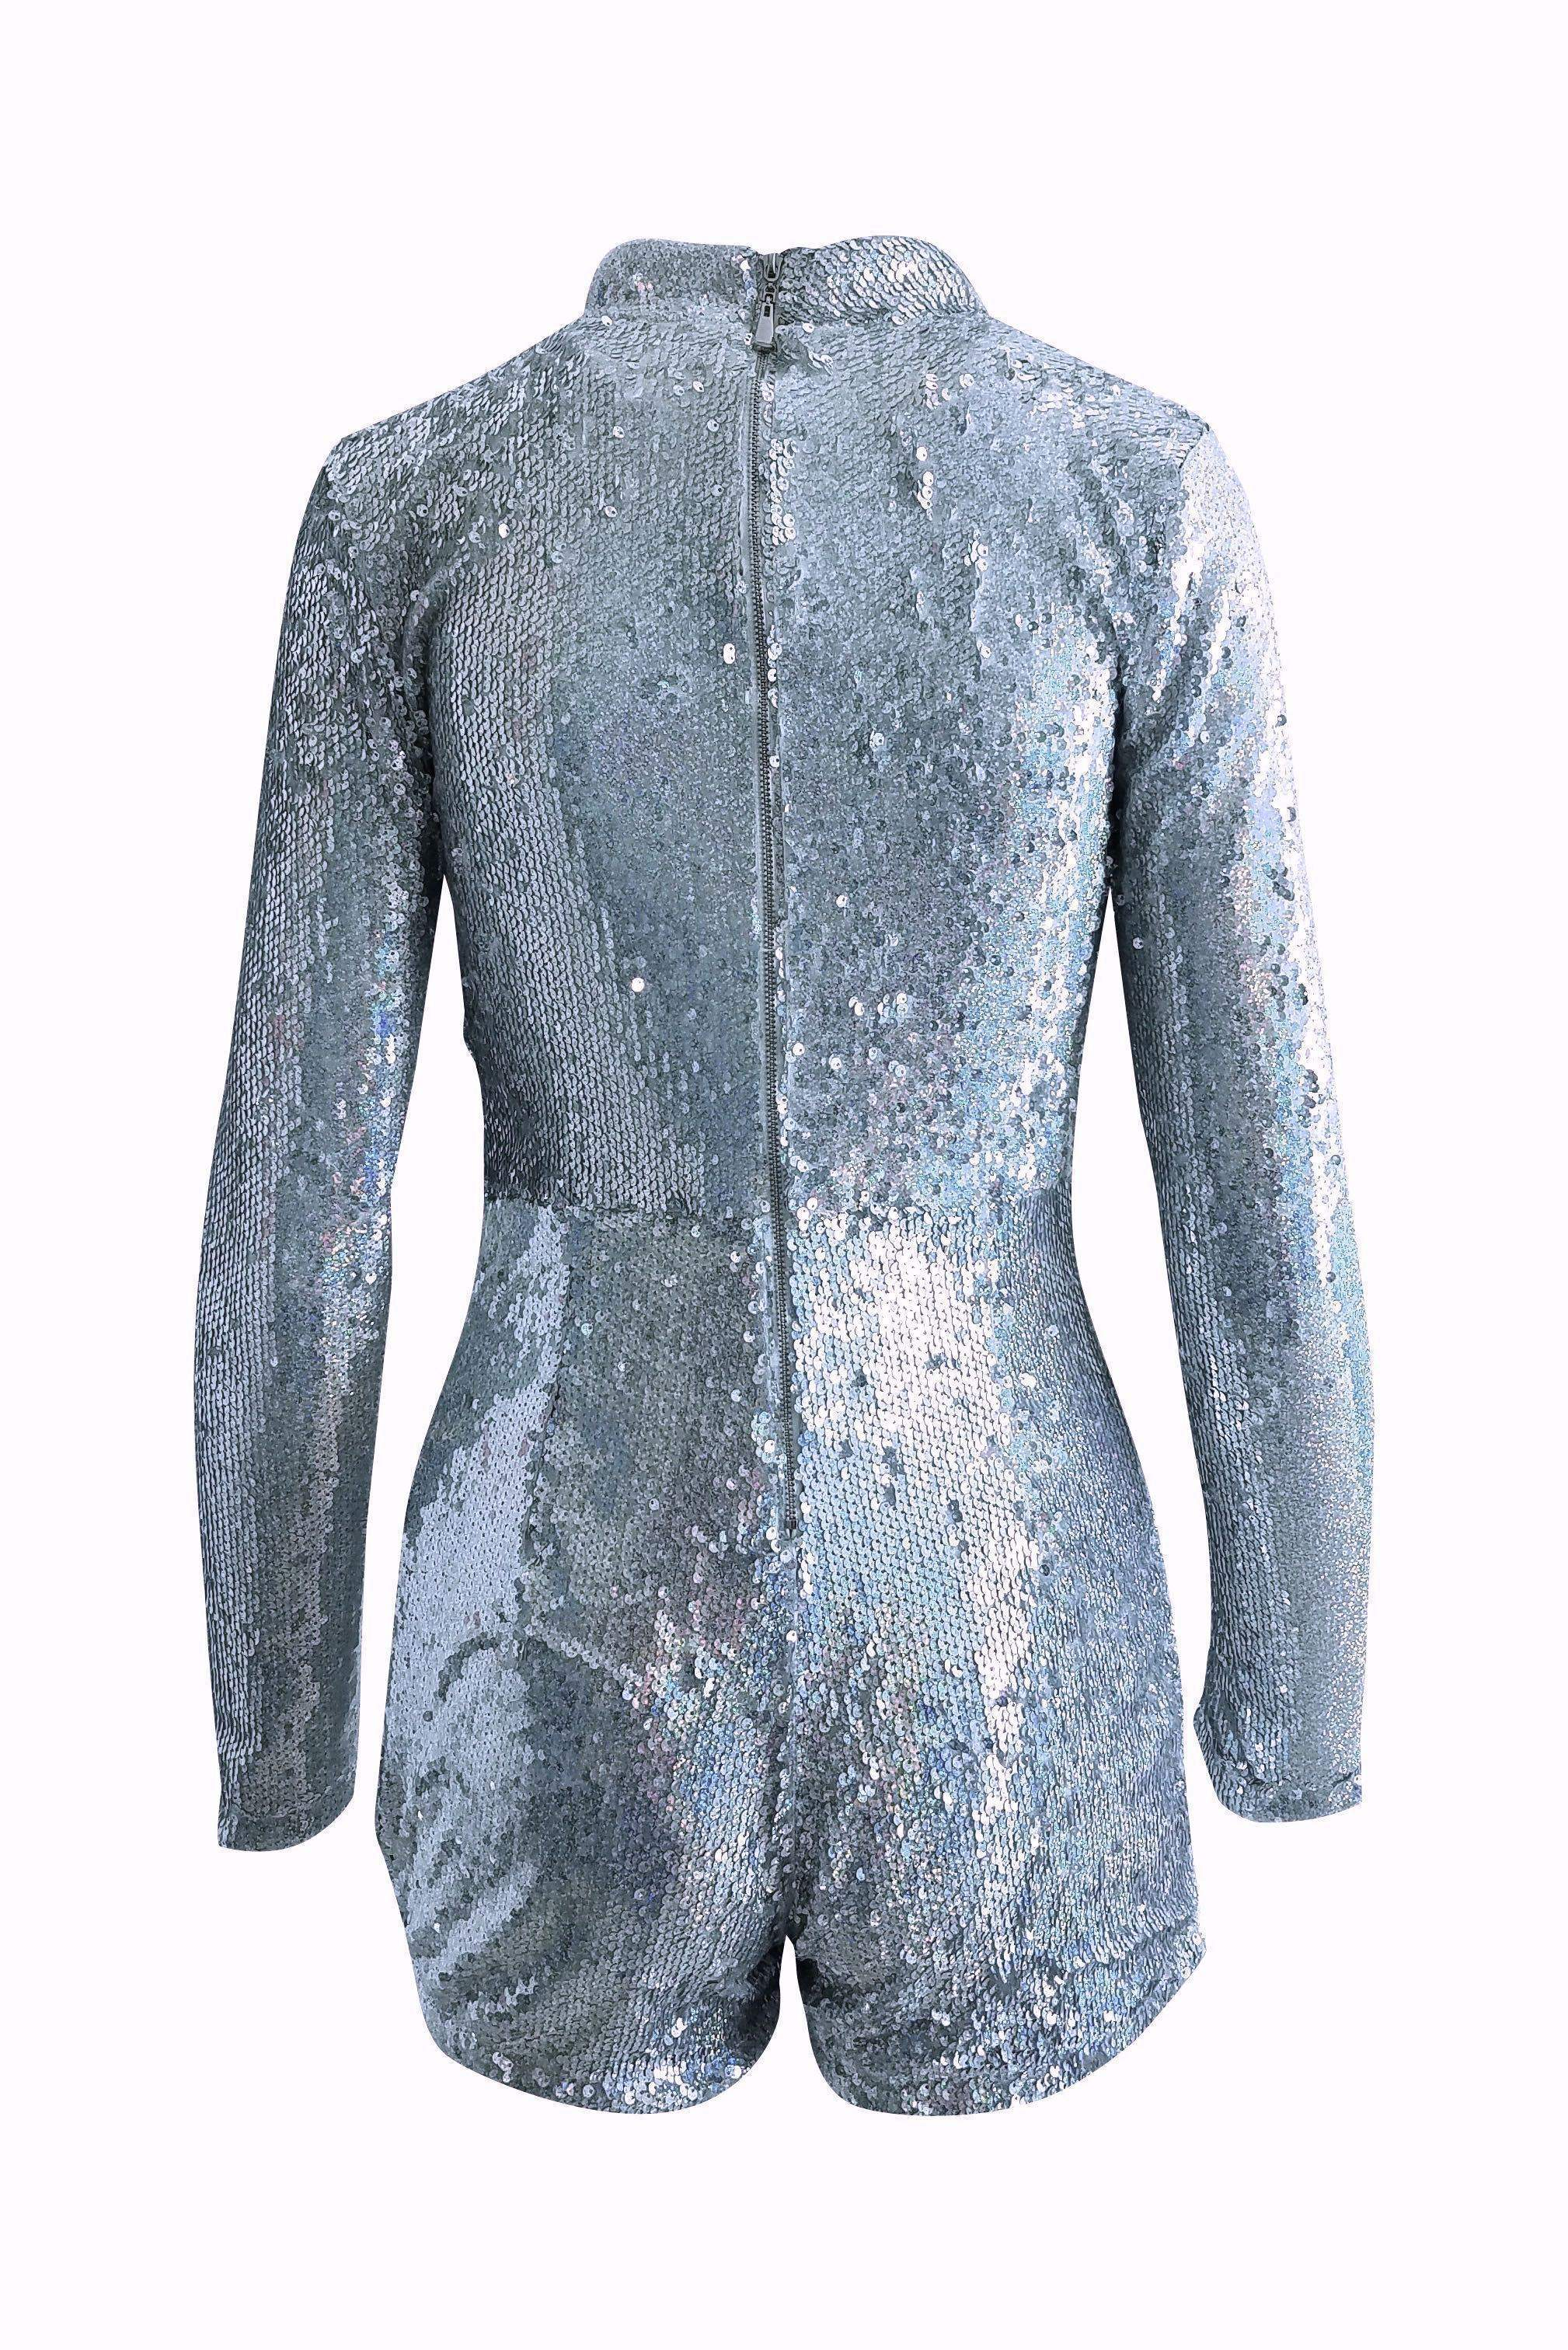 Galaxy Dreams Holographic Sequin Romper Playsuit in Silver - Playsuit - Xtaren - BKLYN Bodies